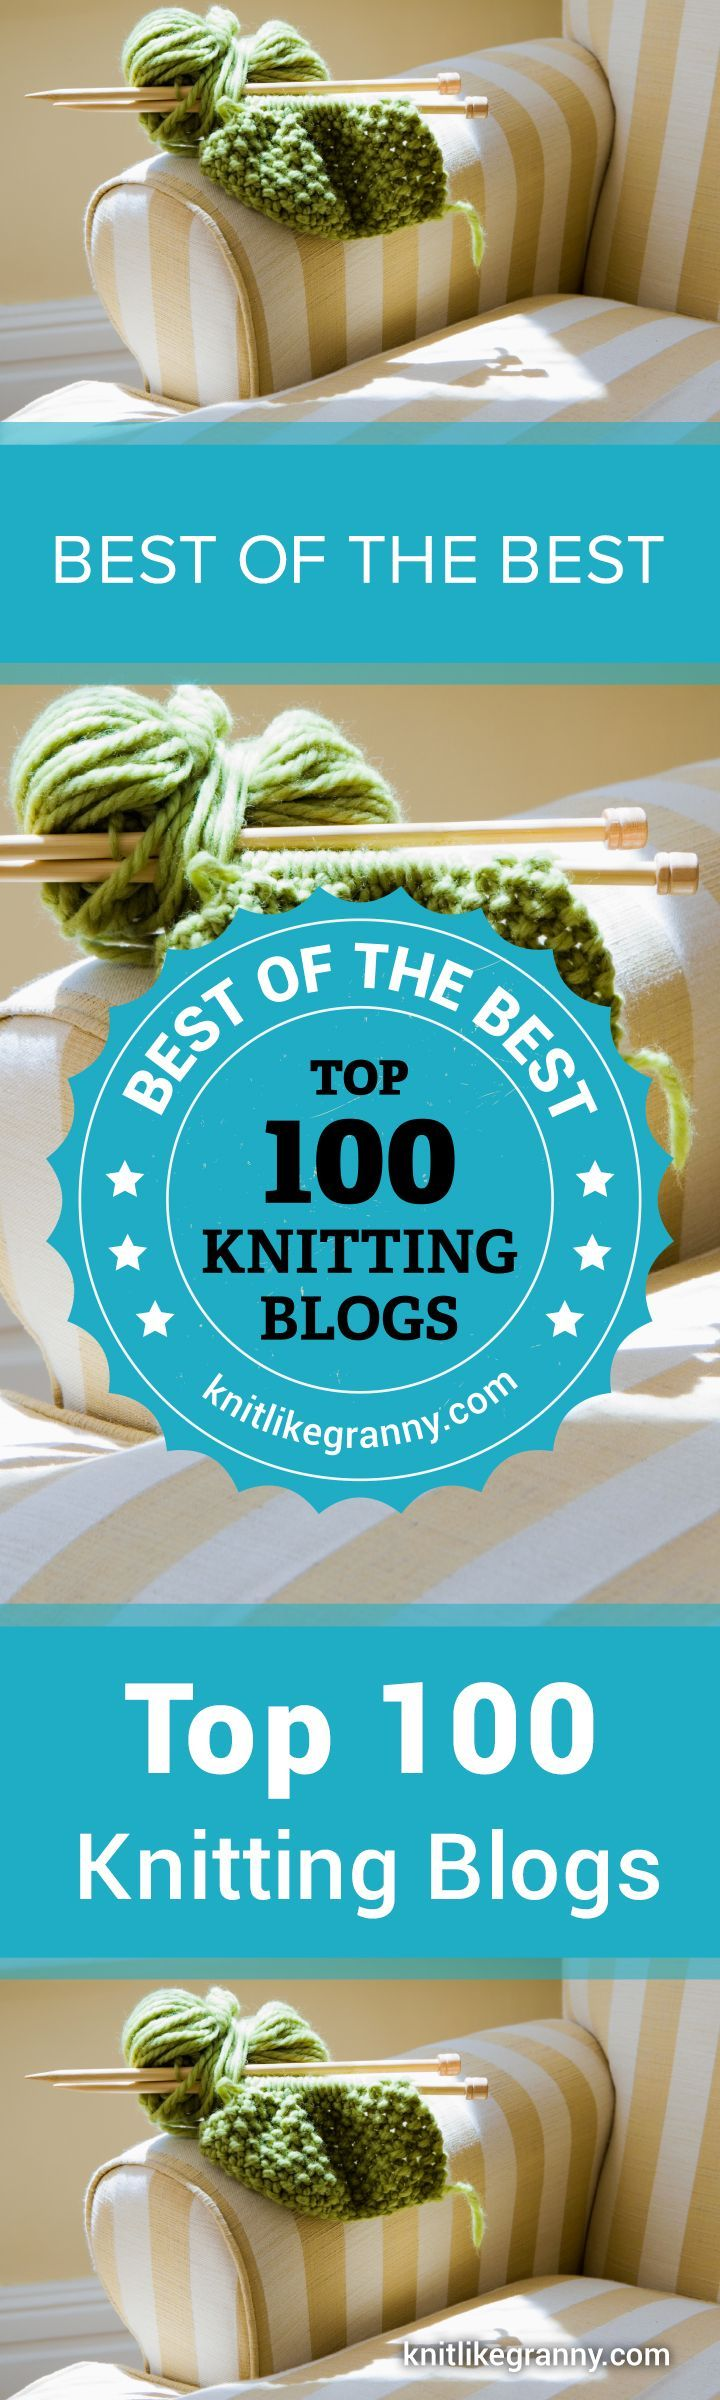 Best Of The Best. The Top 100 Knitting Blogs to Follow in 2018. Thanks for stopping by :) The web is awash with countless colorful images of incredible knitting designs and patterns. How do you know which knitting bloggers are actually worth following?We've searched high and low to bring you our pick of wonderful knitting bloggers who are experts at their craft. Have a favorite knitting blogger we haven't listed. Please let us knowFor the ultimate in knitting inspiration... Enjoy!!! :)